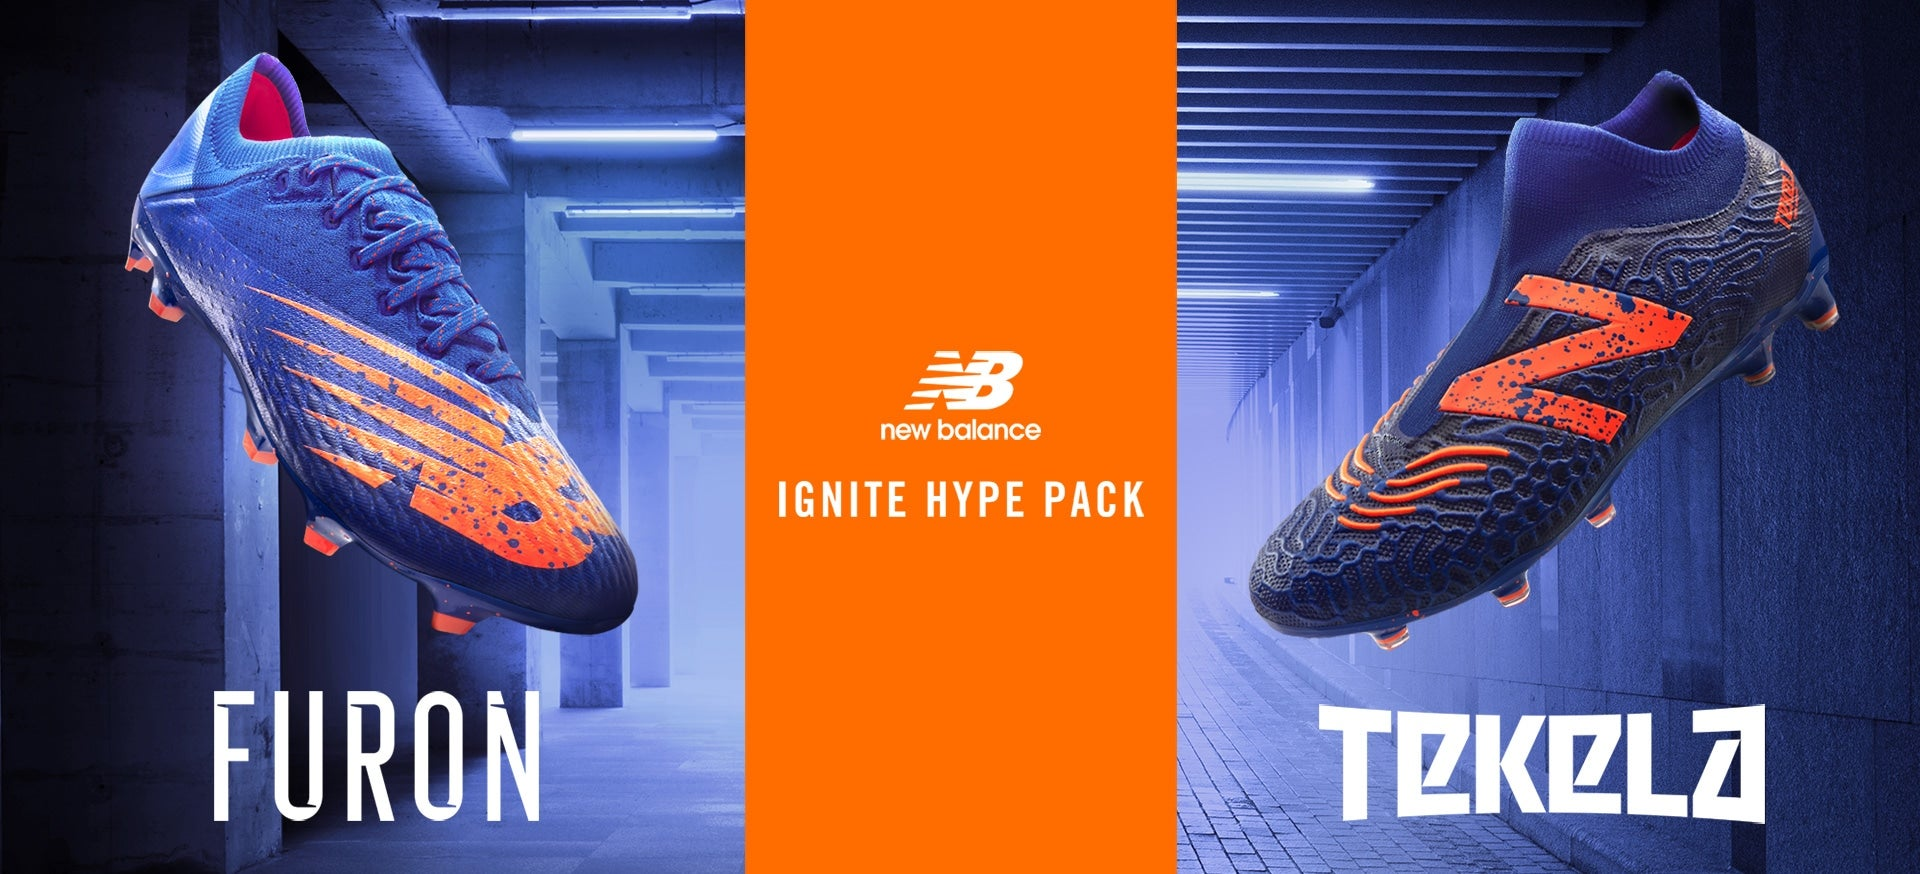 Ignite Hype Pack